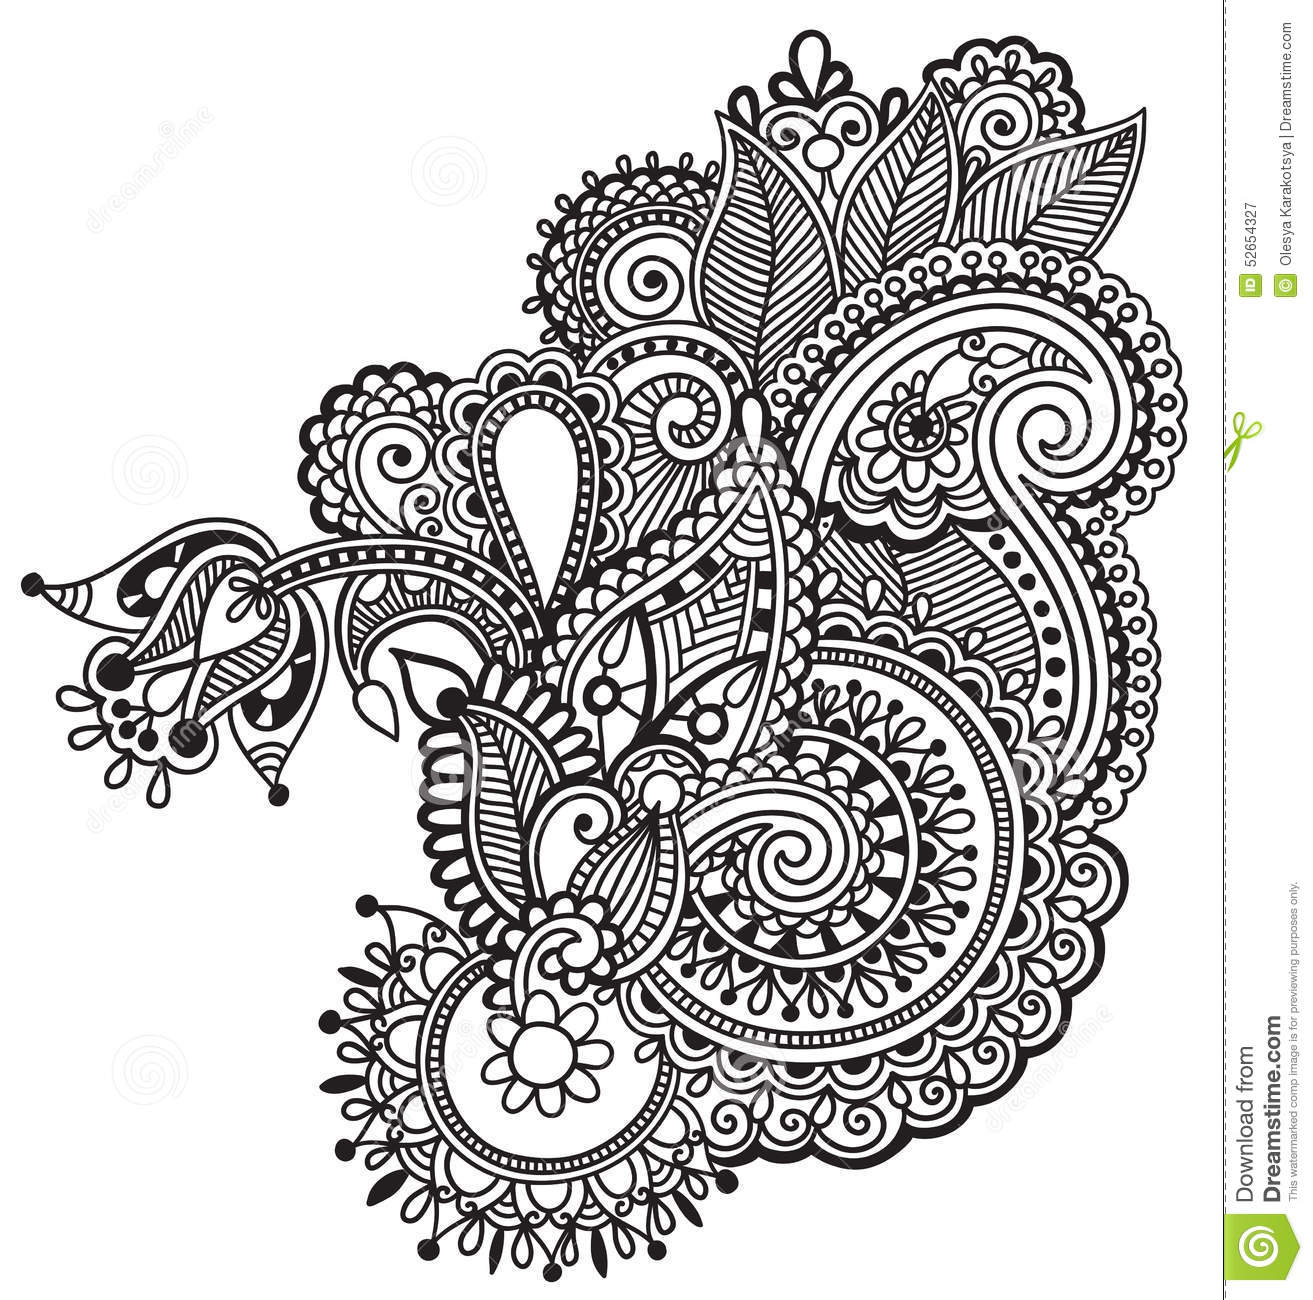 Line Art Media Design : Black line art ornate flower design ukrainian stock